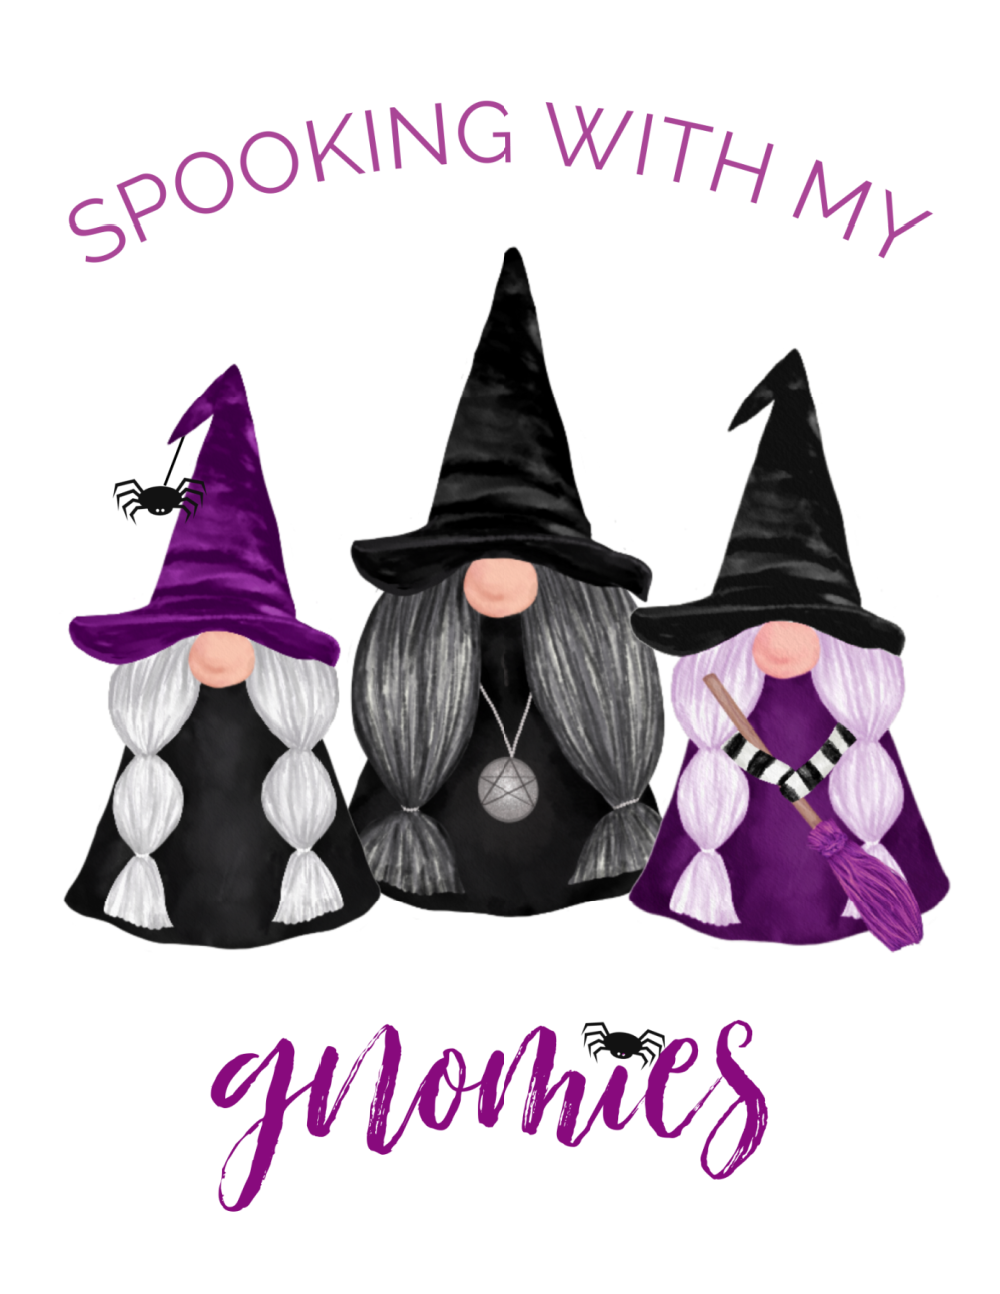 Spooking With My Gnomies free Halloween gnome printables.